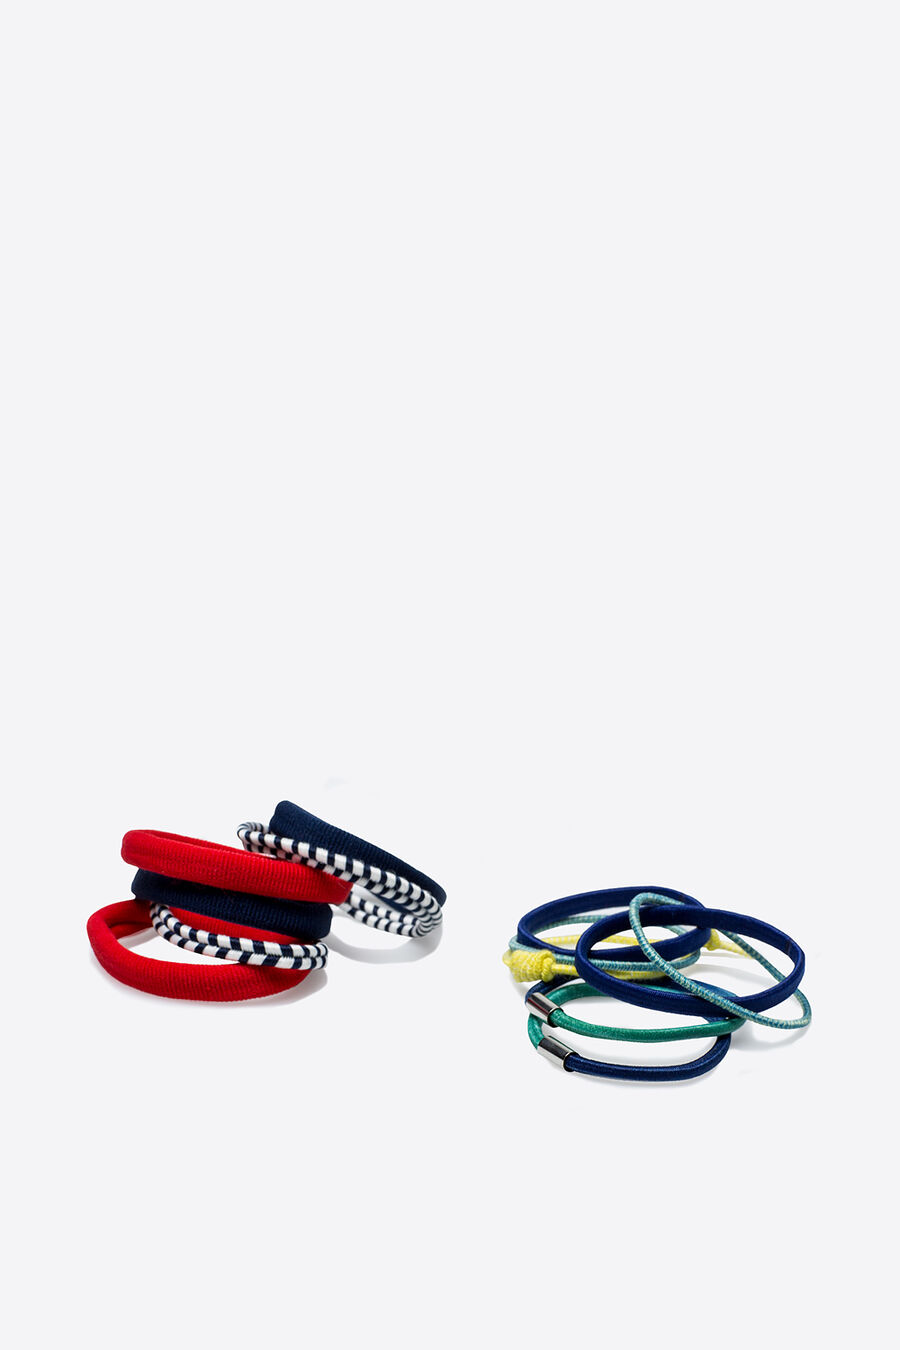 Pack of hair ties in different colours